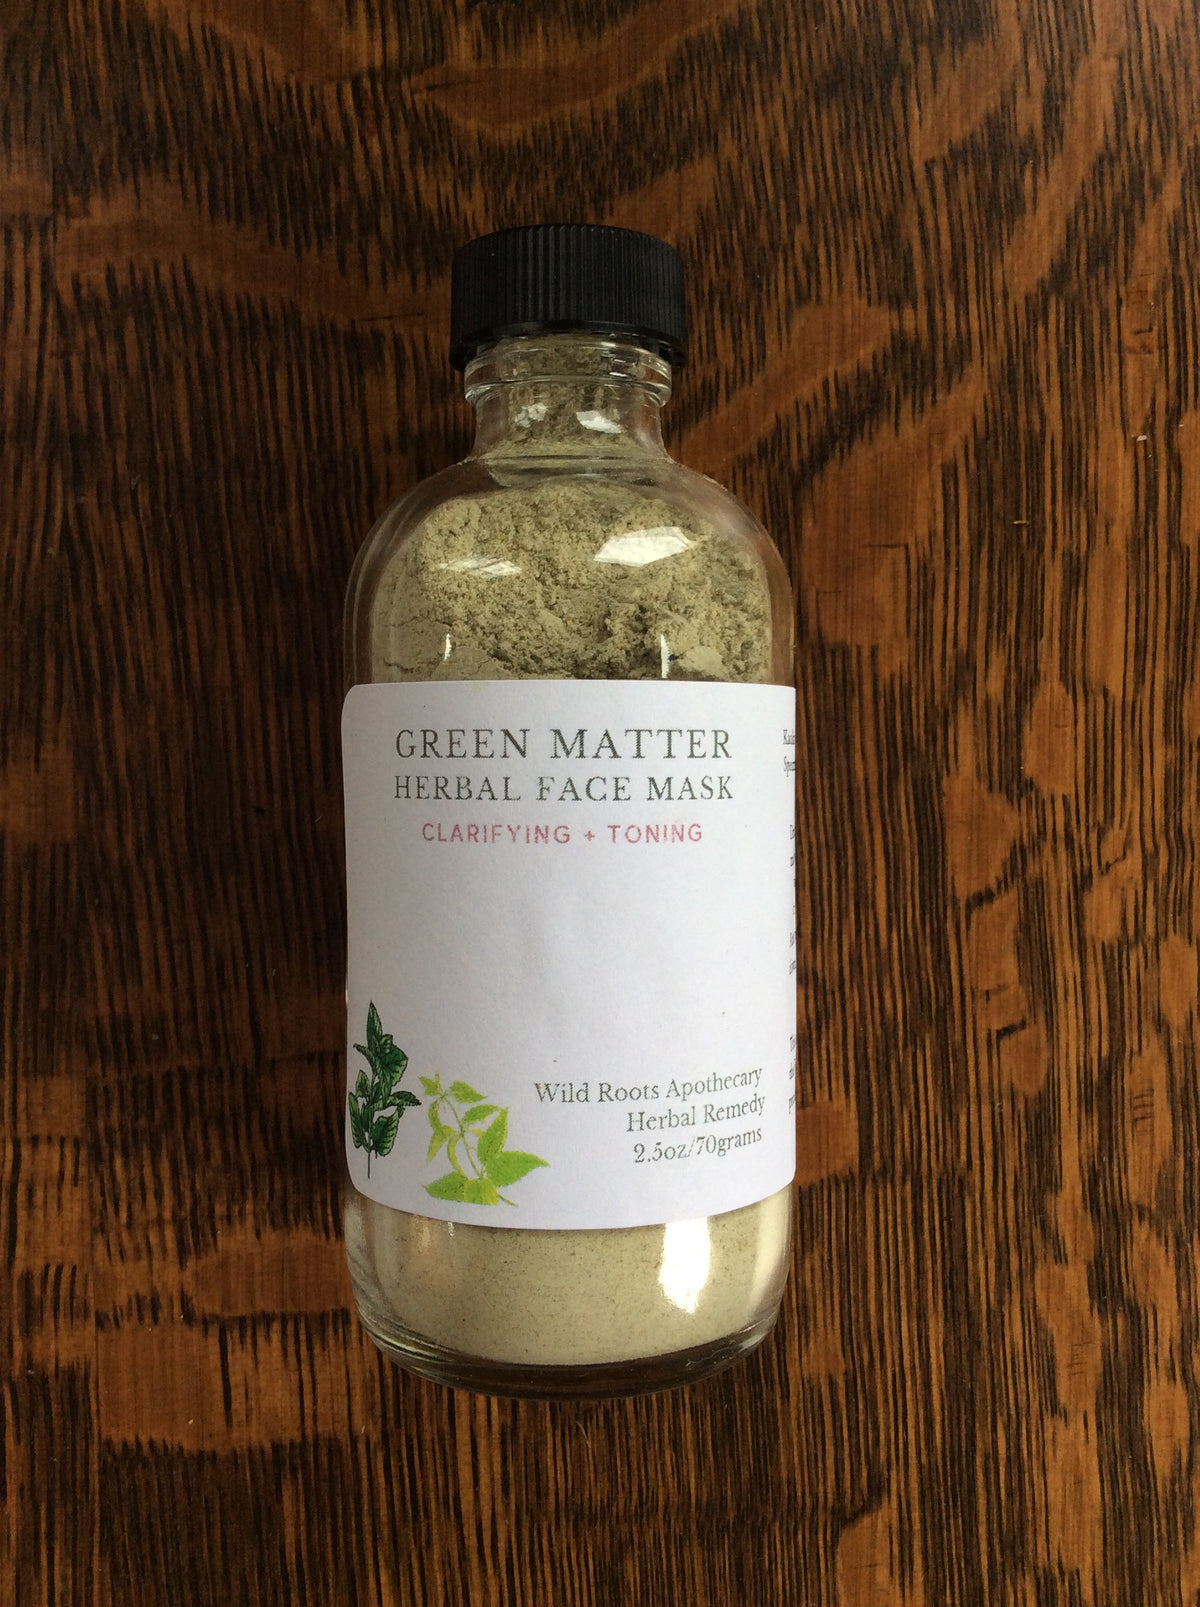 Green Matter Herbal Face Mask